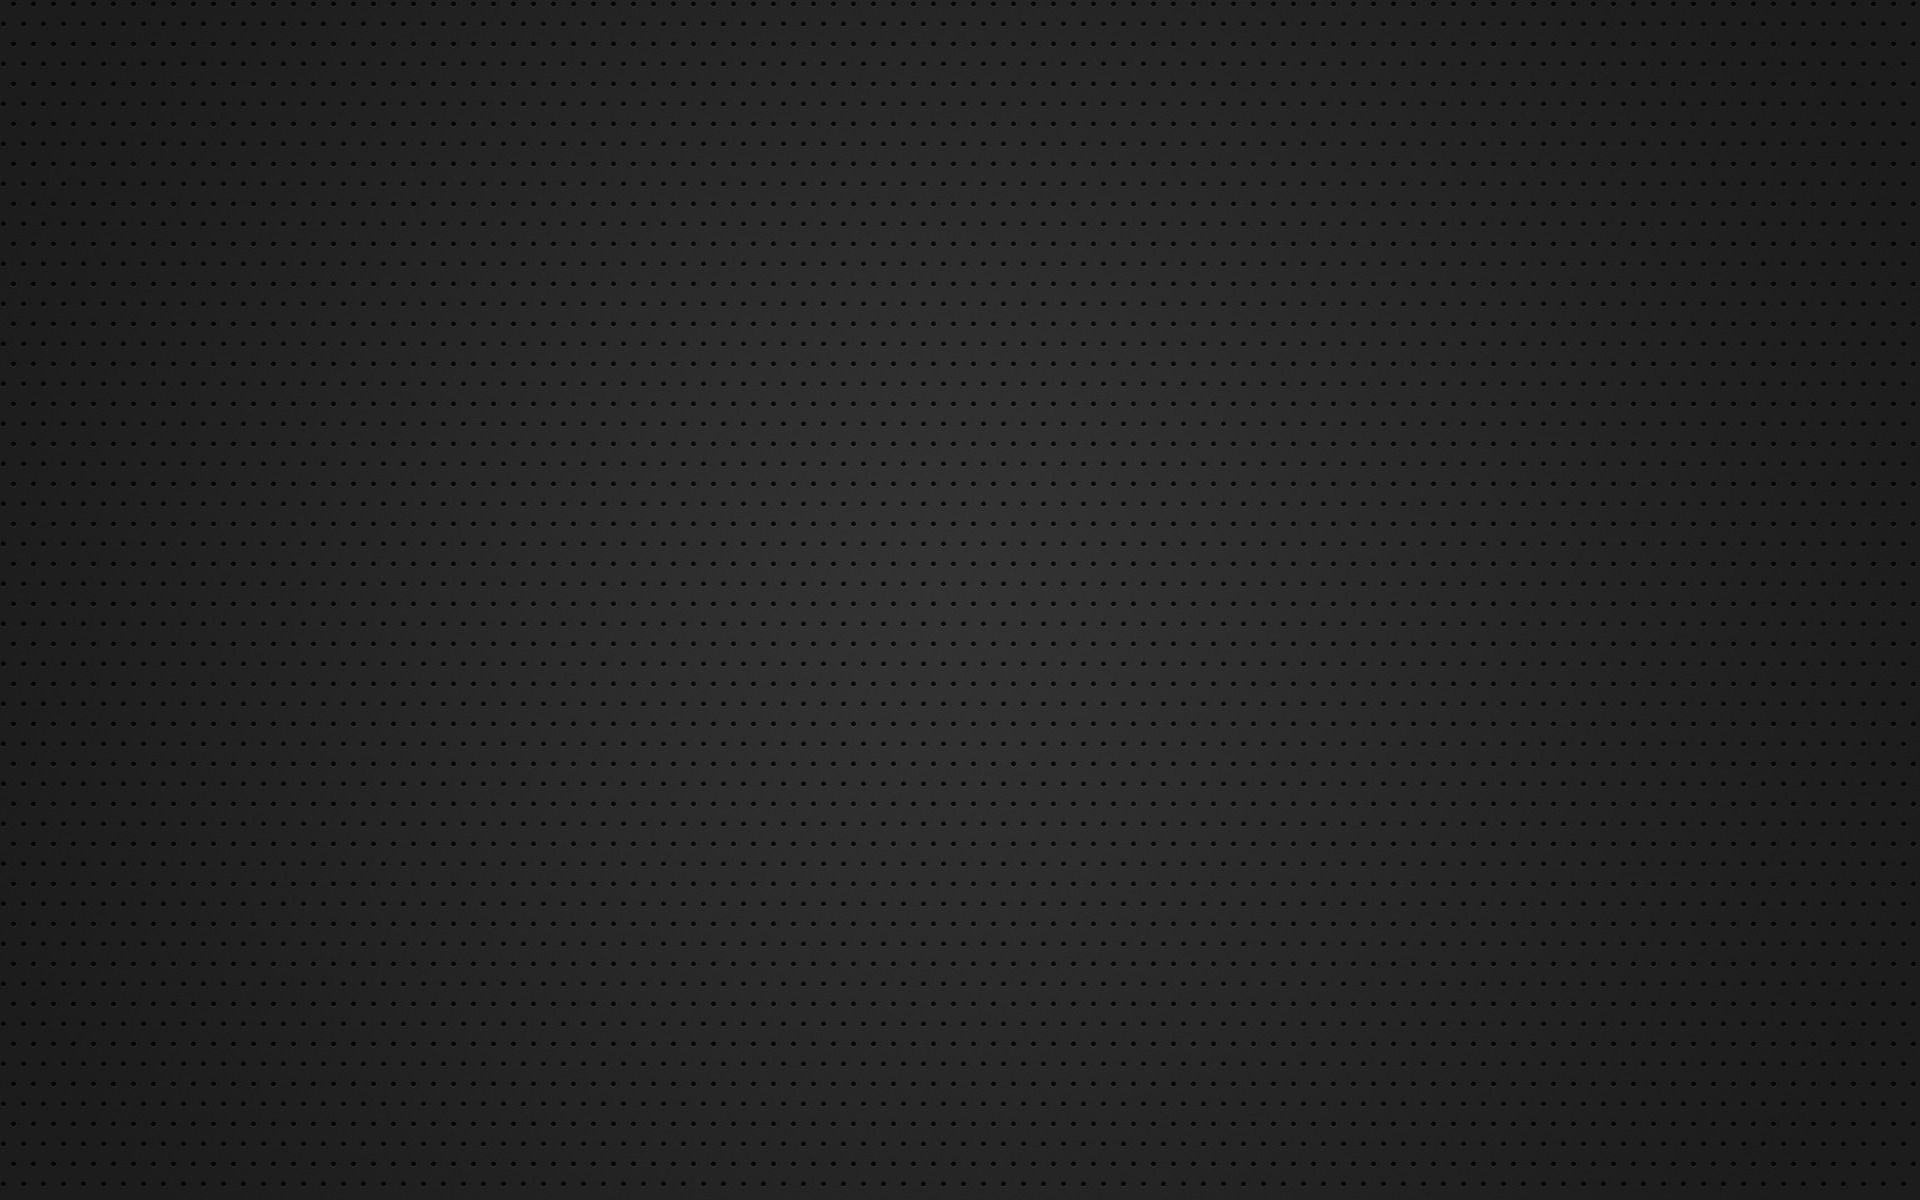 Matte Black Wallpaper HD